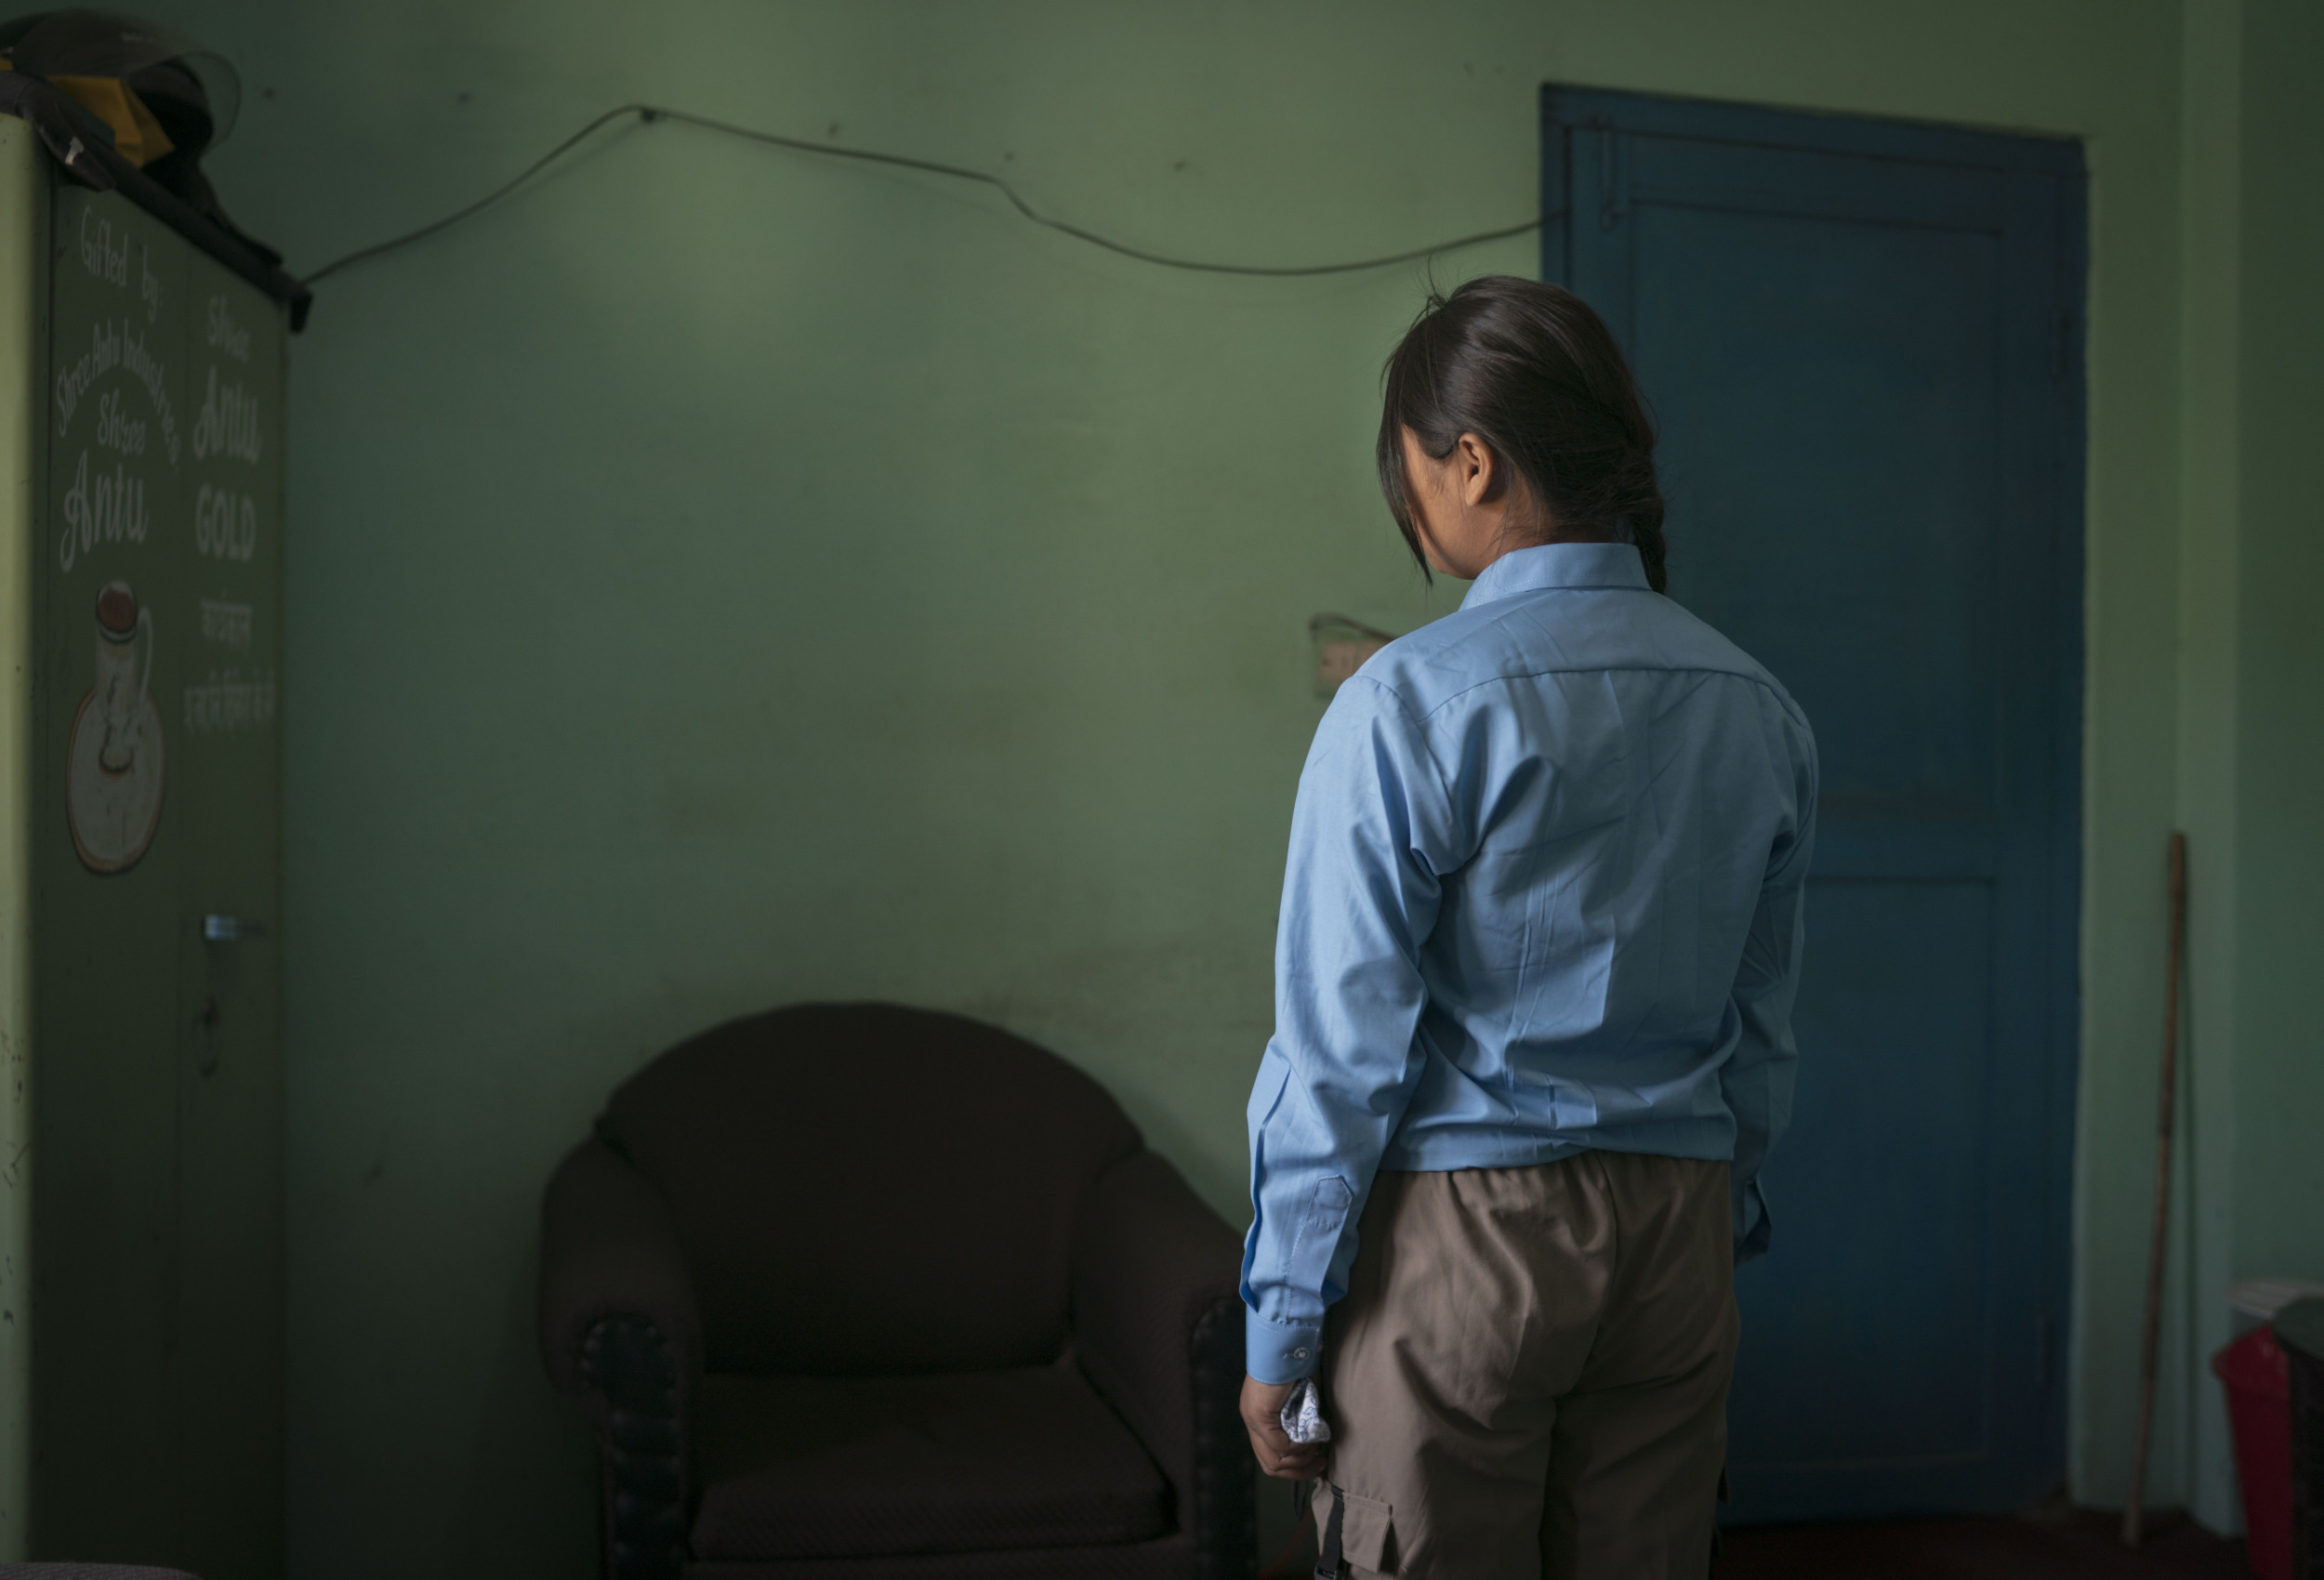 'I was Raped and Trafficked--Now I'm Studying Law to Go After my Attackers' thumbnail